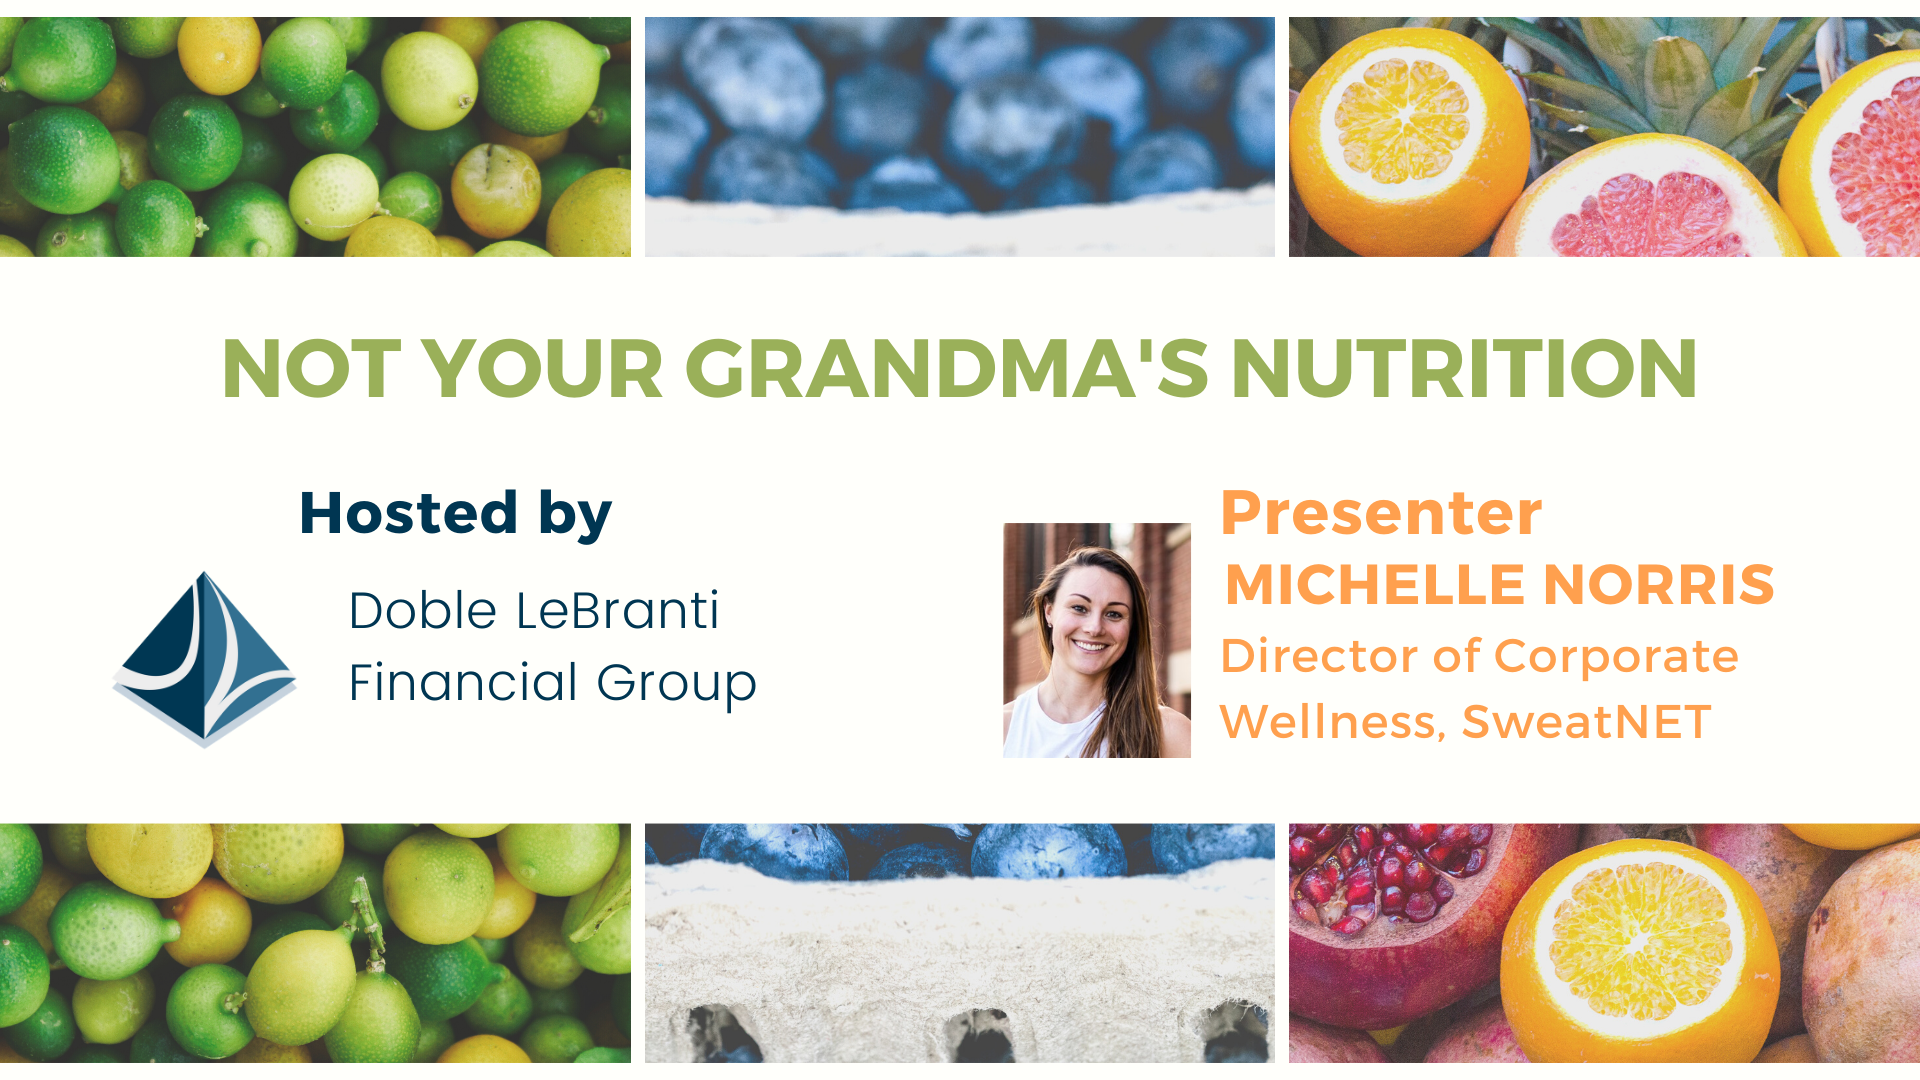 Not Your Grandma's Nutrition